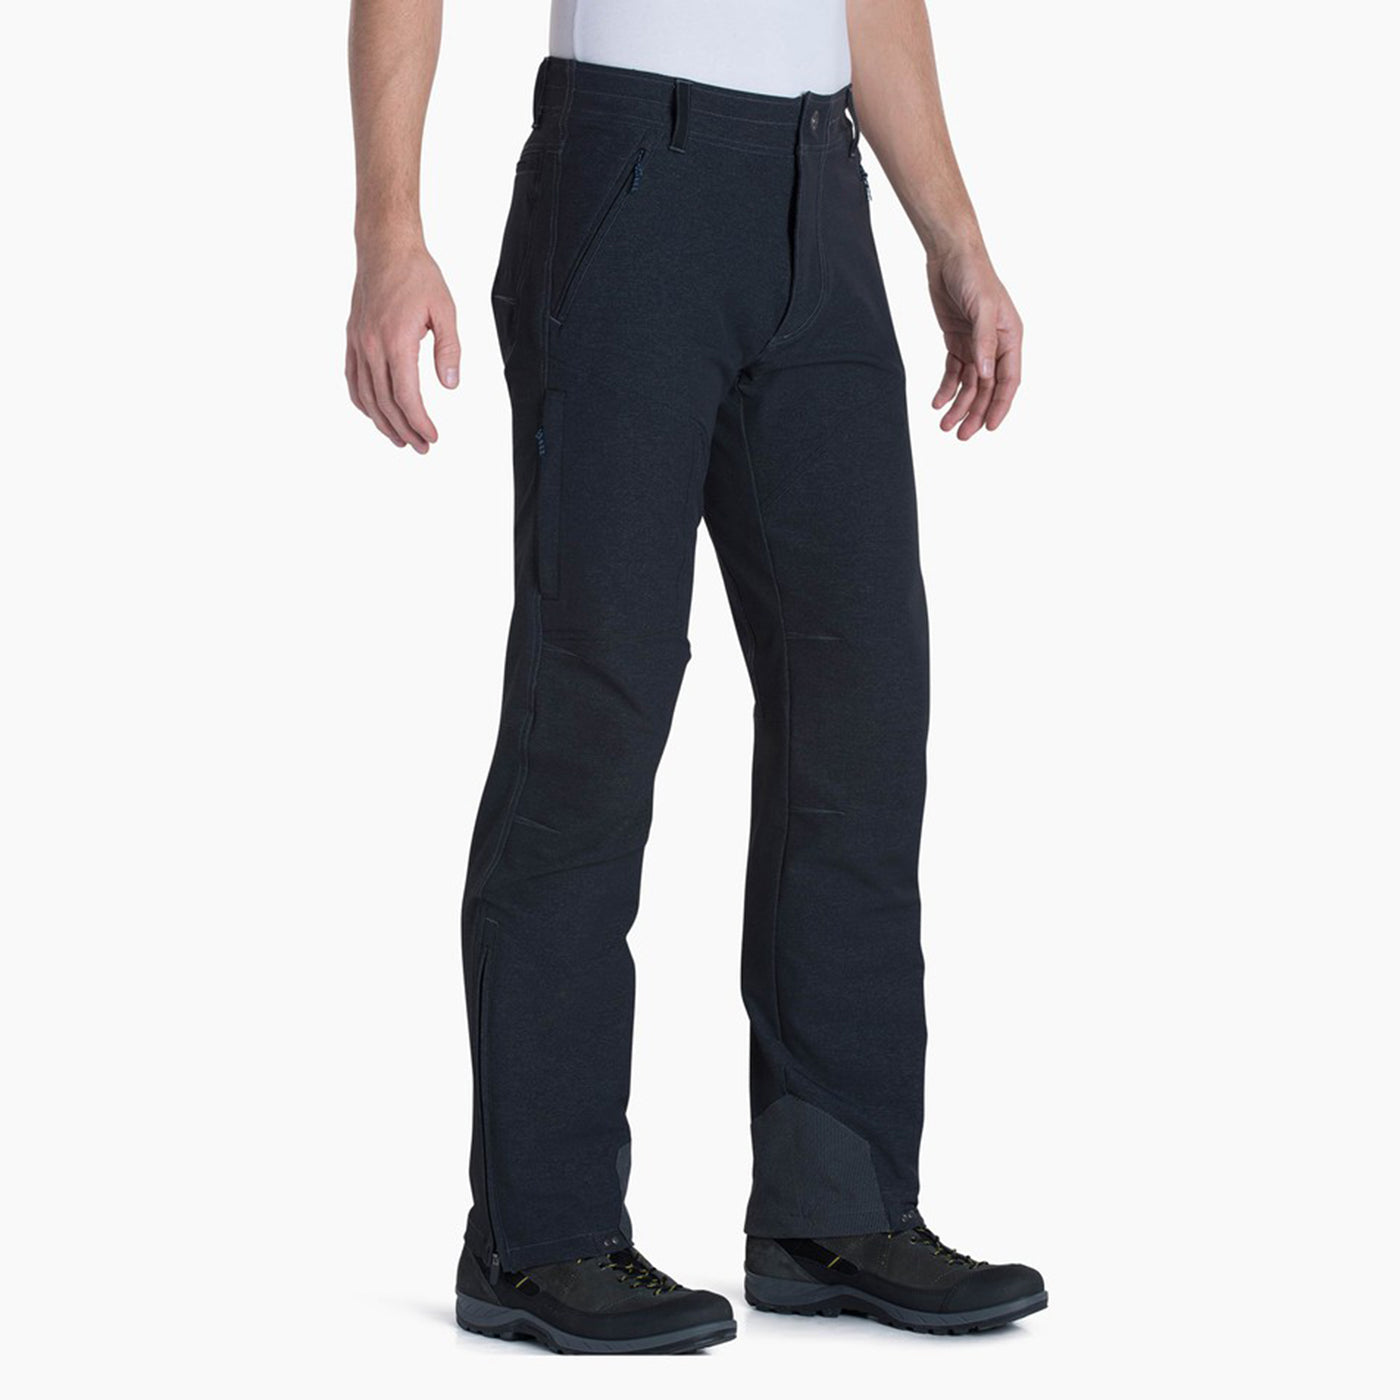 kuhl klash pant mens on model front view in color dark grey